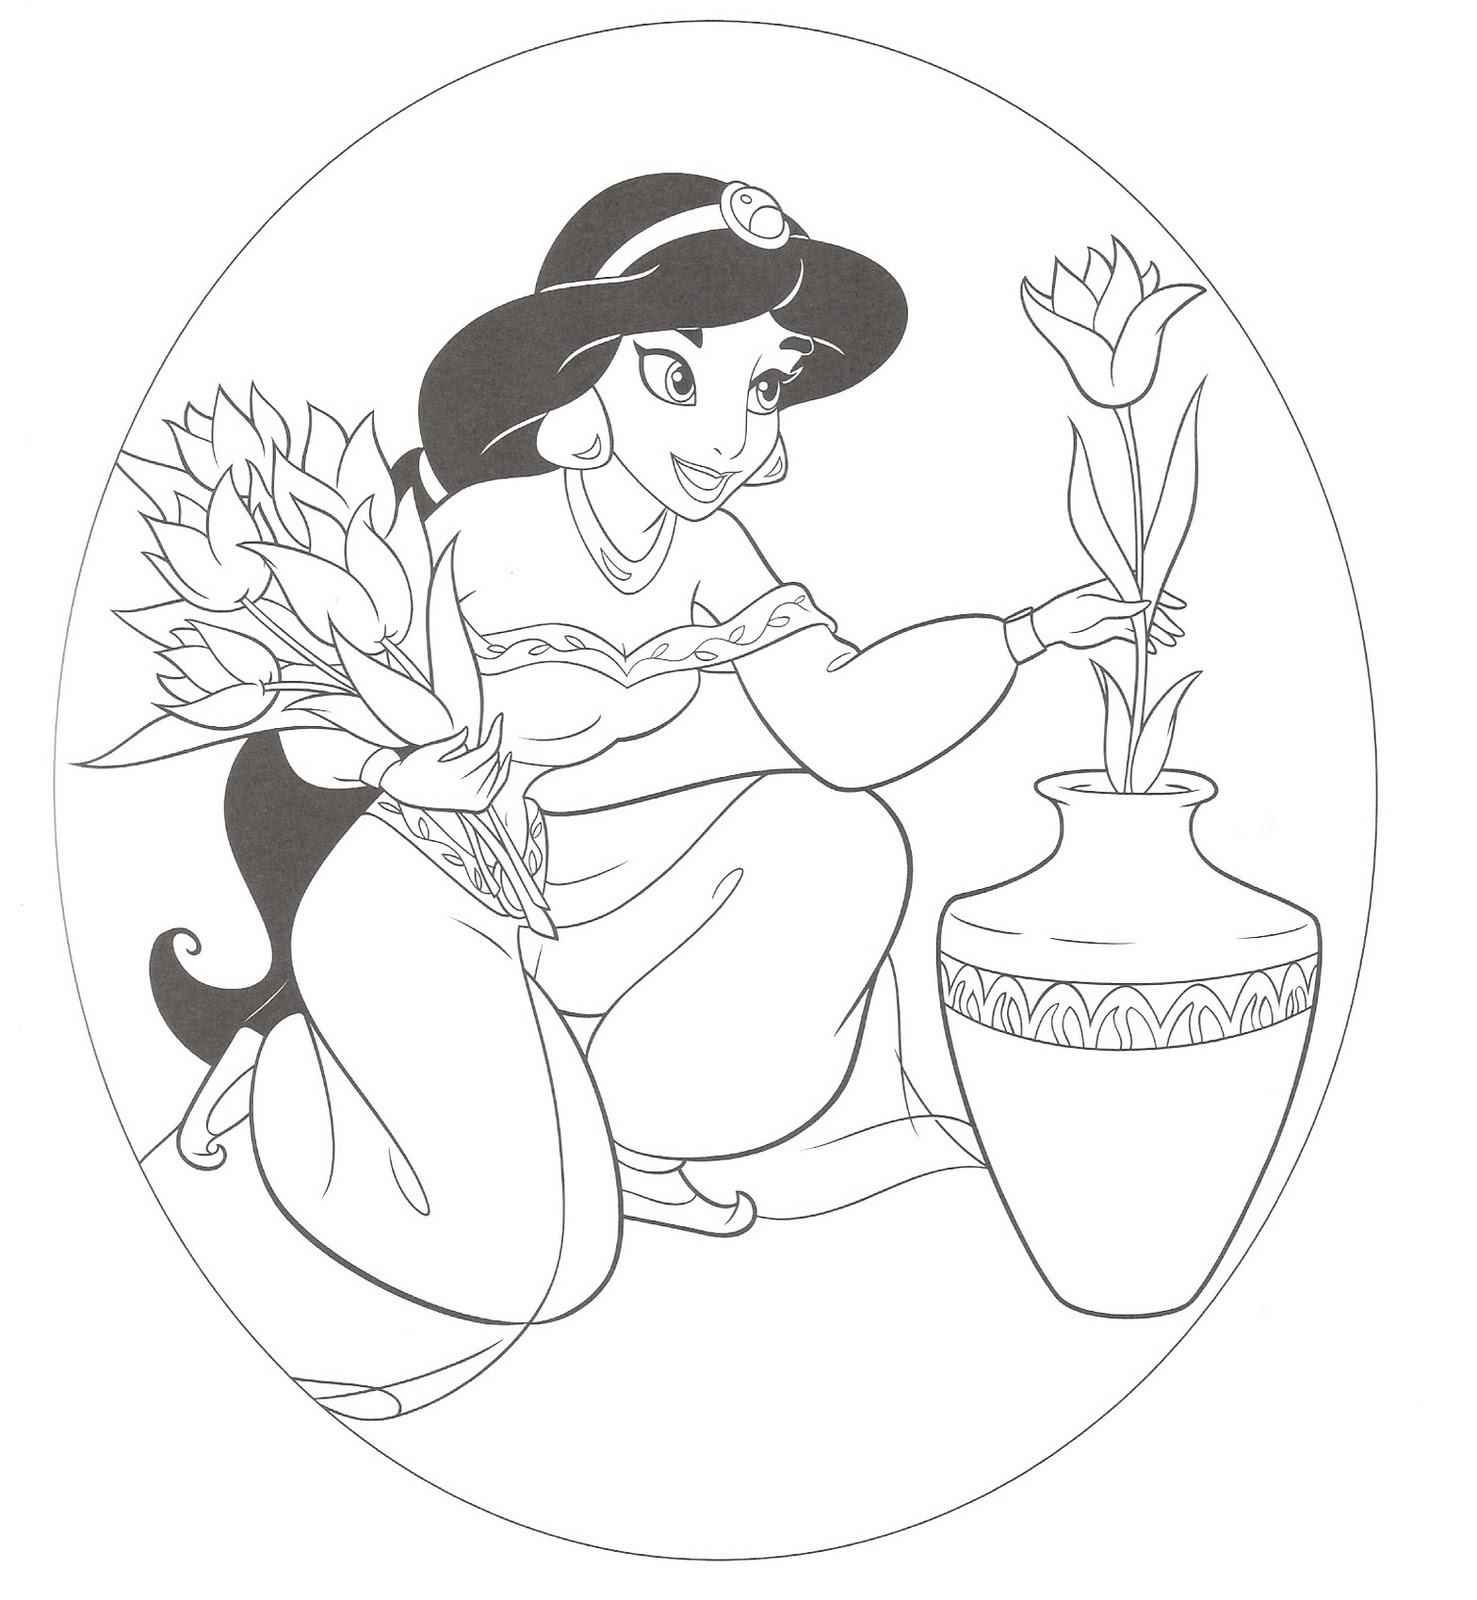 Disney Princess Coloring Pages For Kids Disney Princess Coloring Pages For Free Coloring Sheets